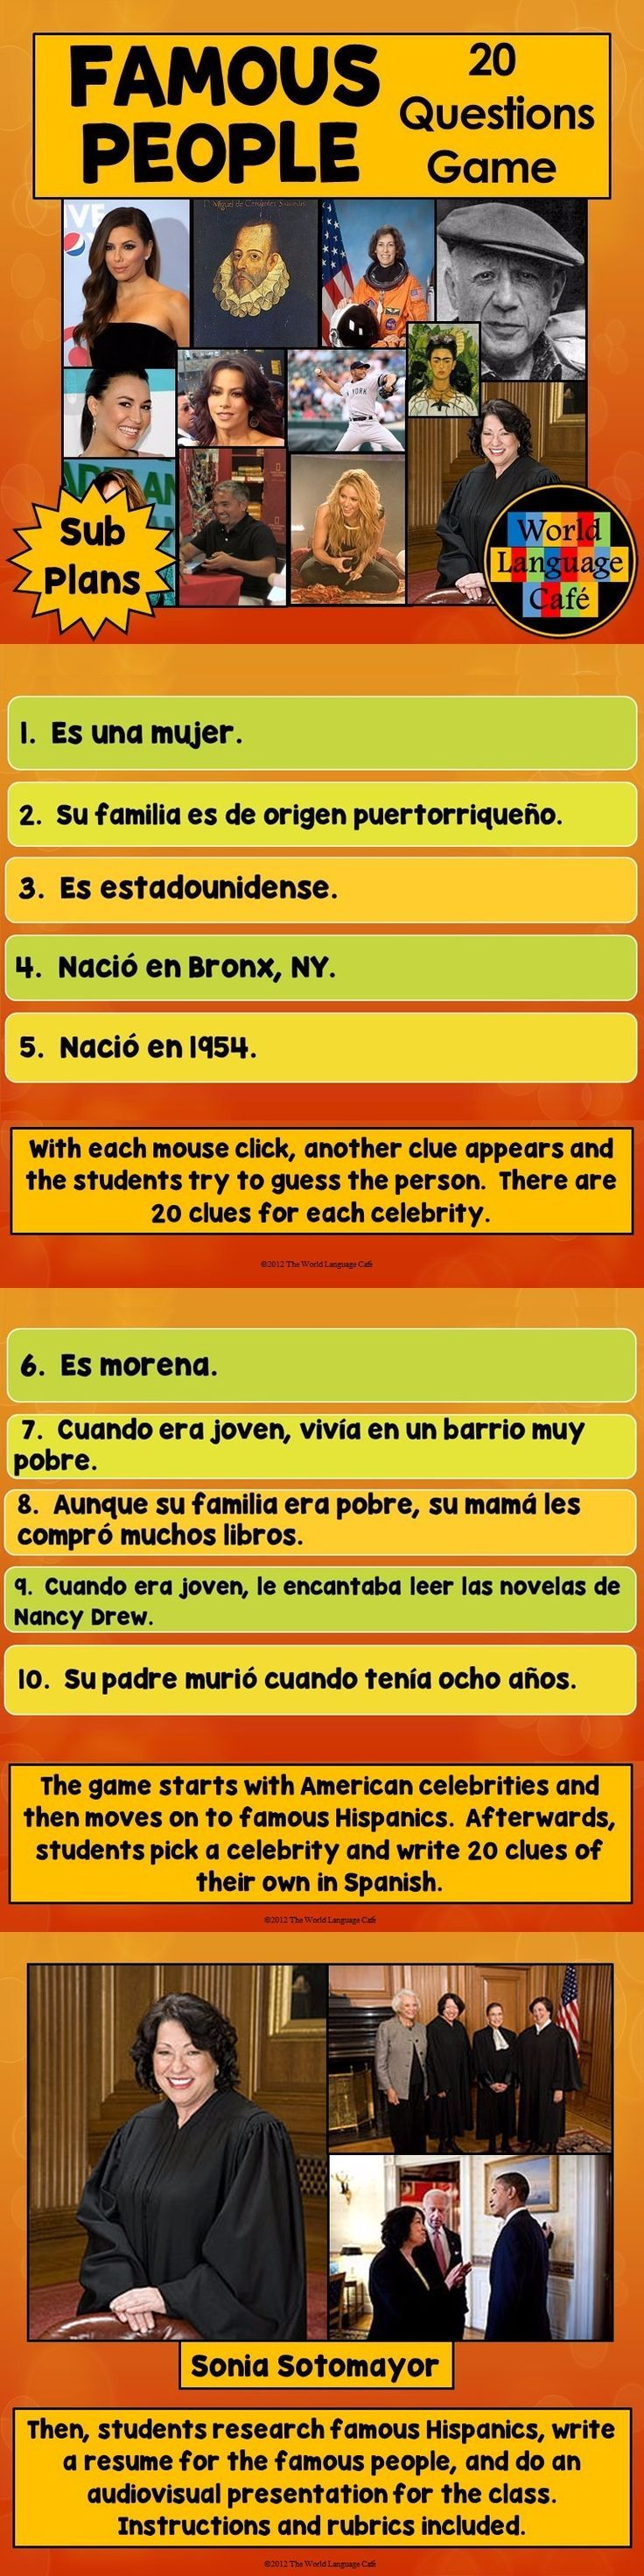 Famous Hispanics Game, Lesson Plans:  20 Questions.  Review Spanish adjectives, professions, age, tener, ser, estar, etc., while learning interesting facts about famous Hispanics and other celebrities. This game can be used for advanced beginner, intermediate, or advanced students. This PowerPoint works really well for sub plans.